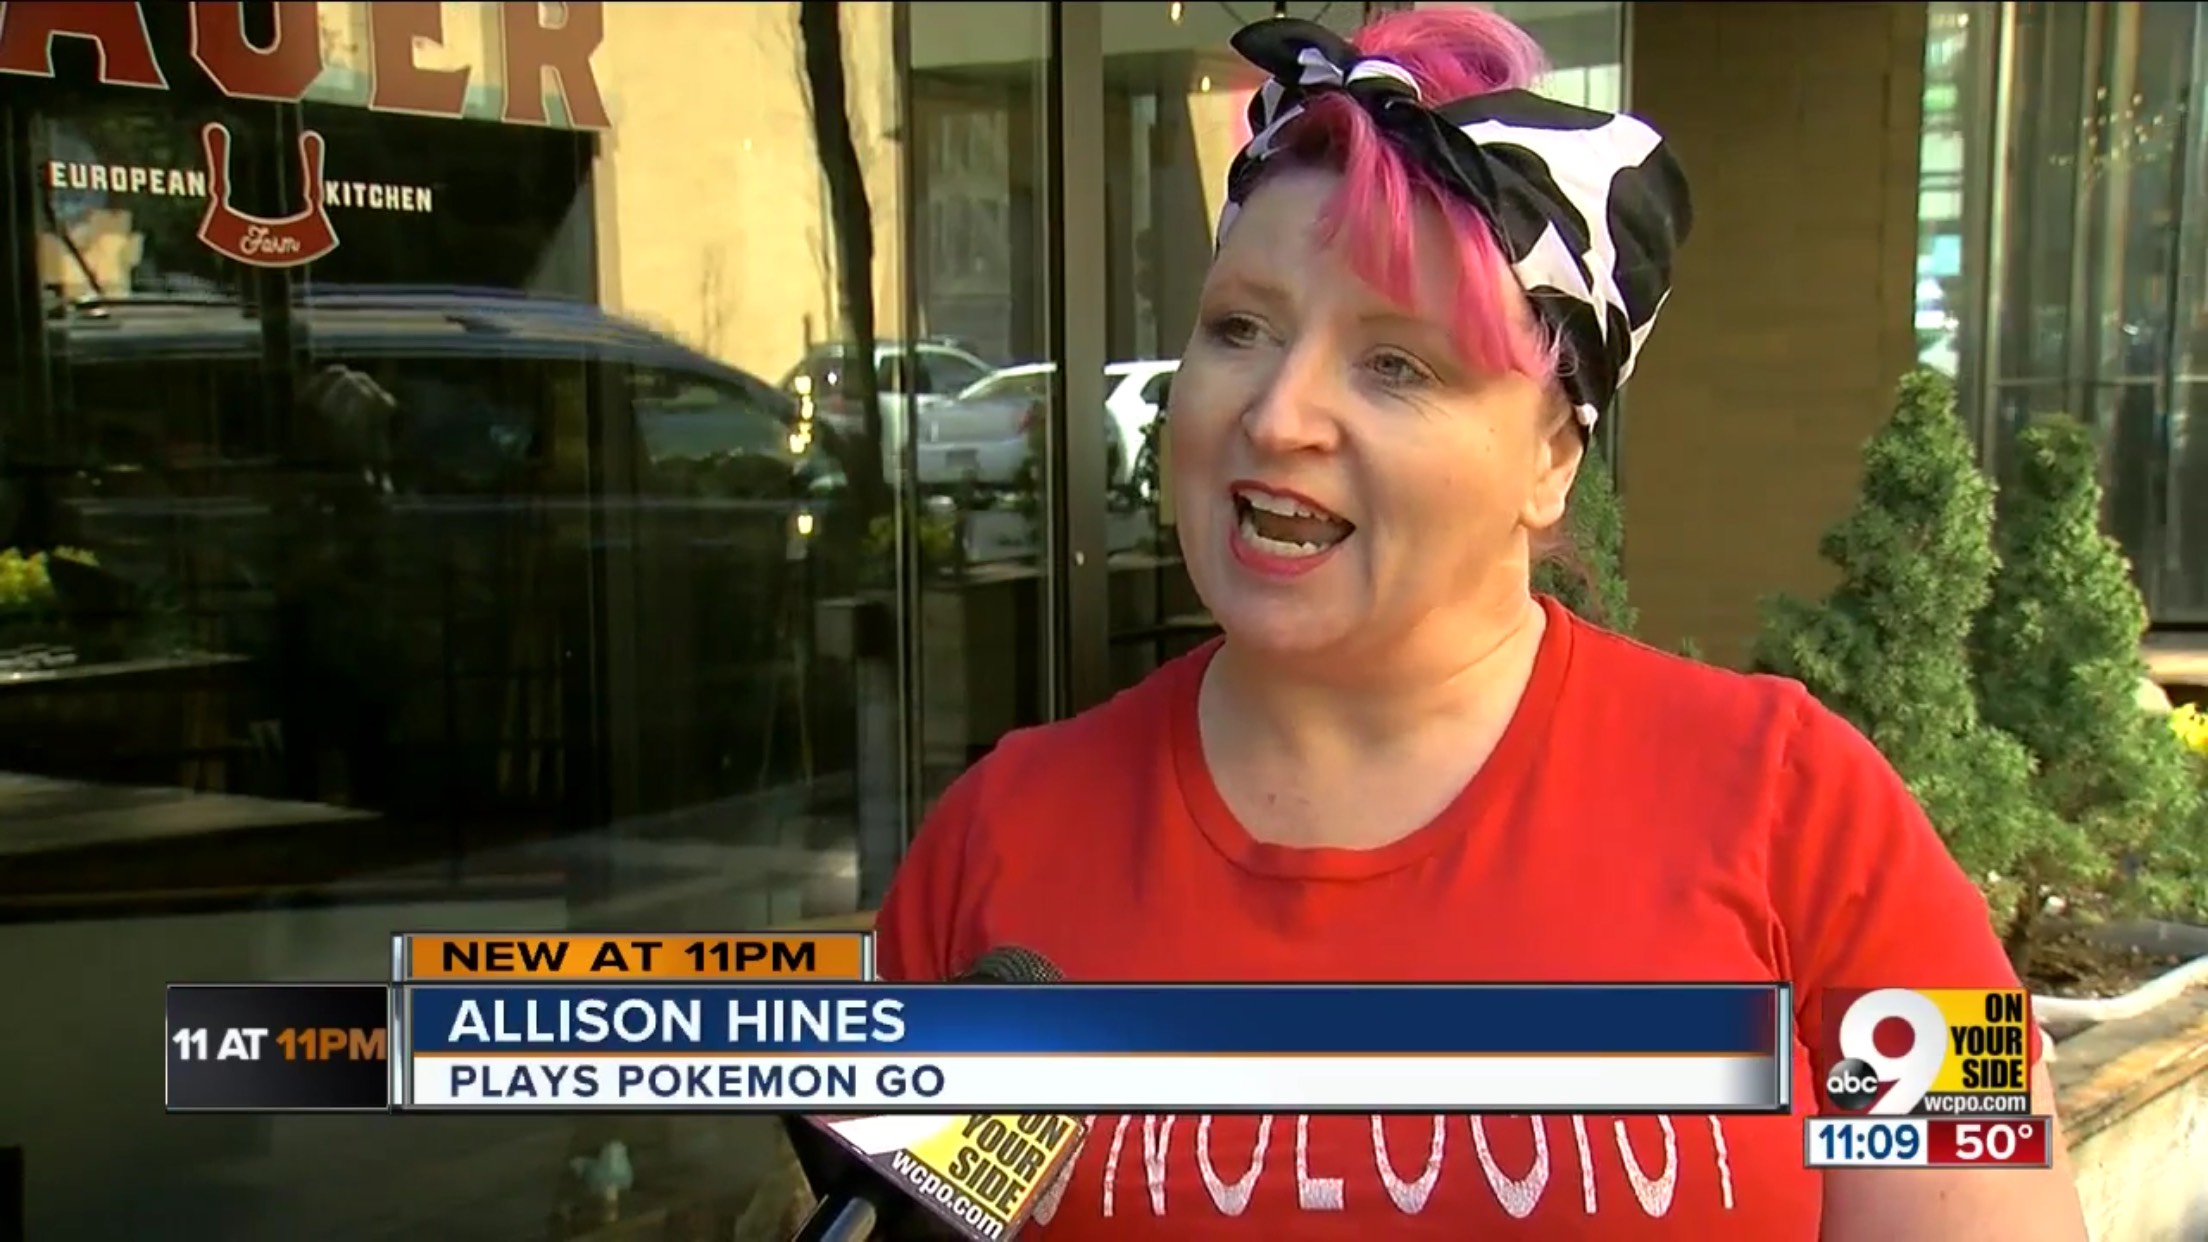 Allison Hines: Plays Pokemon Go